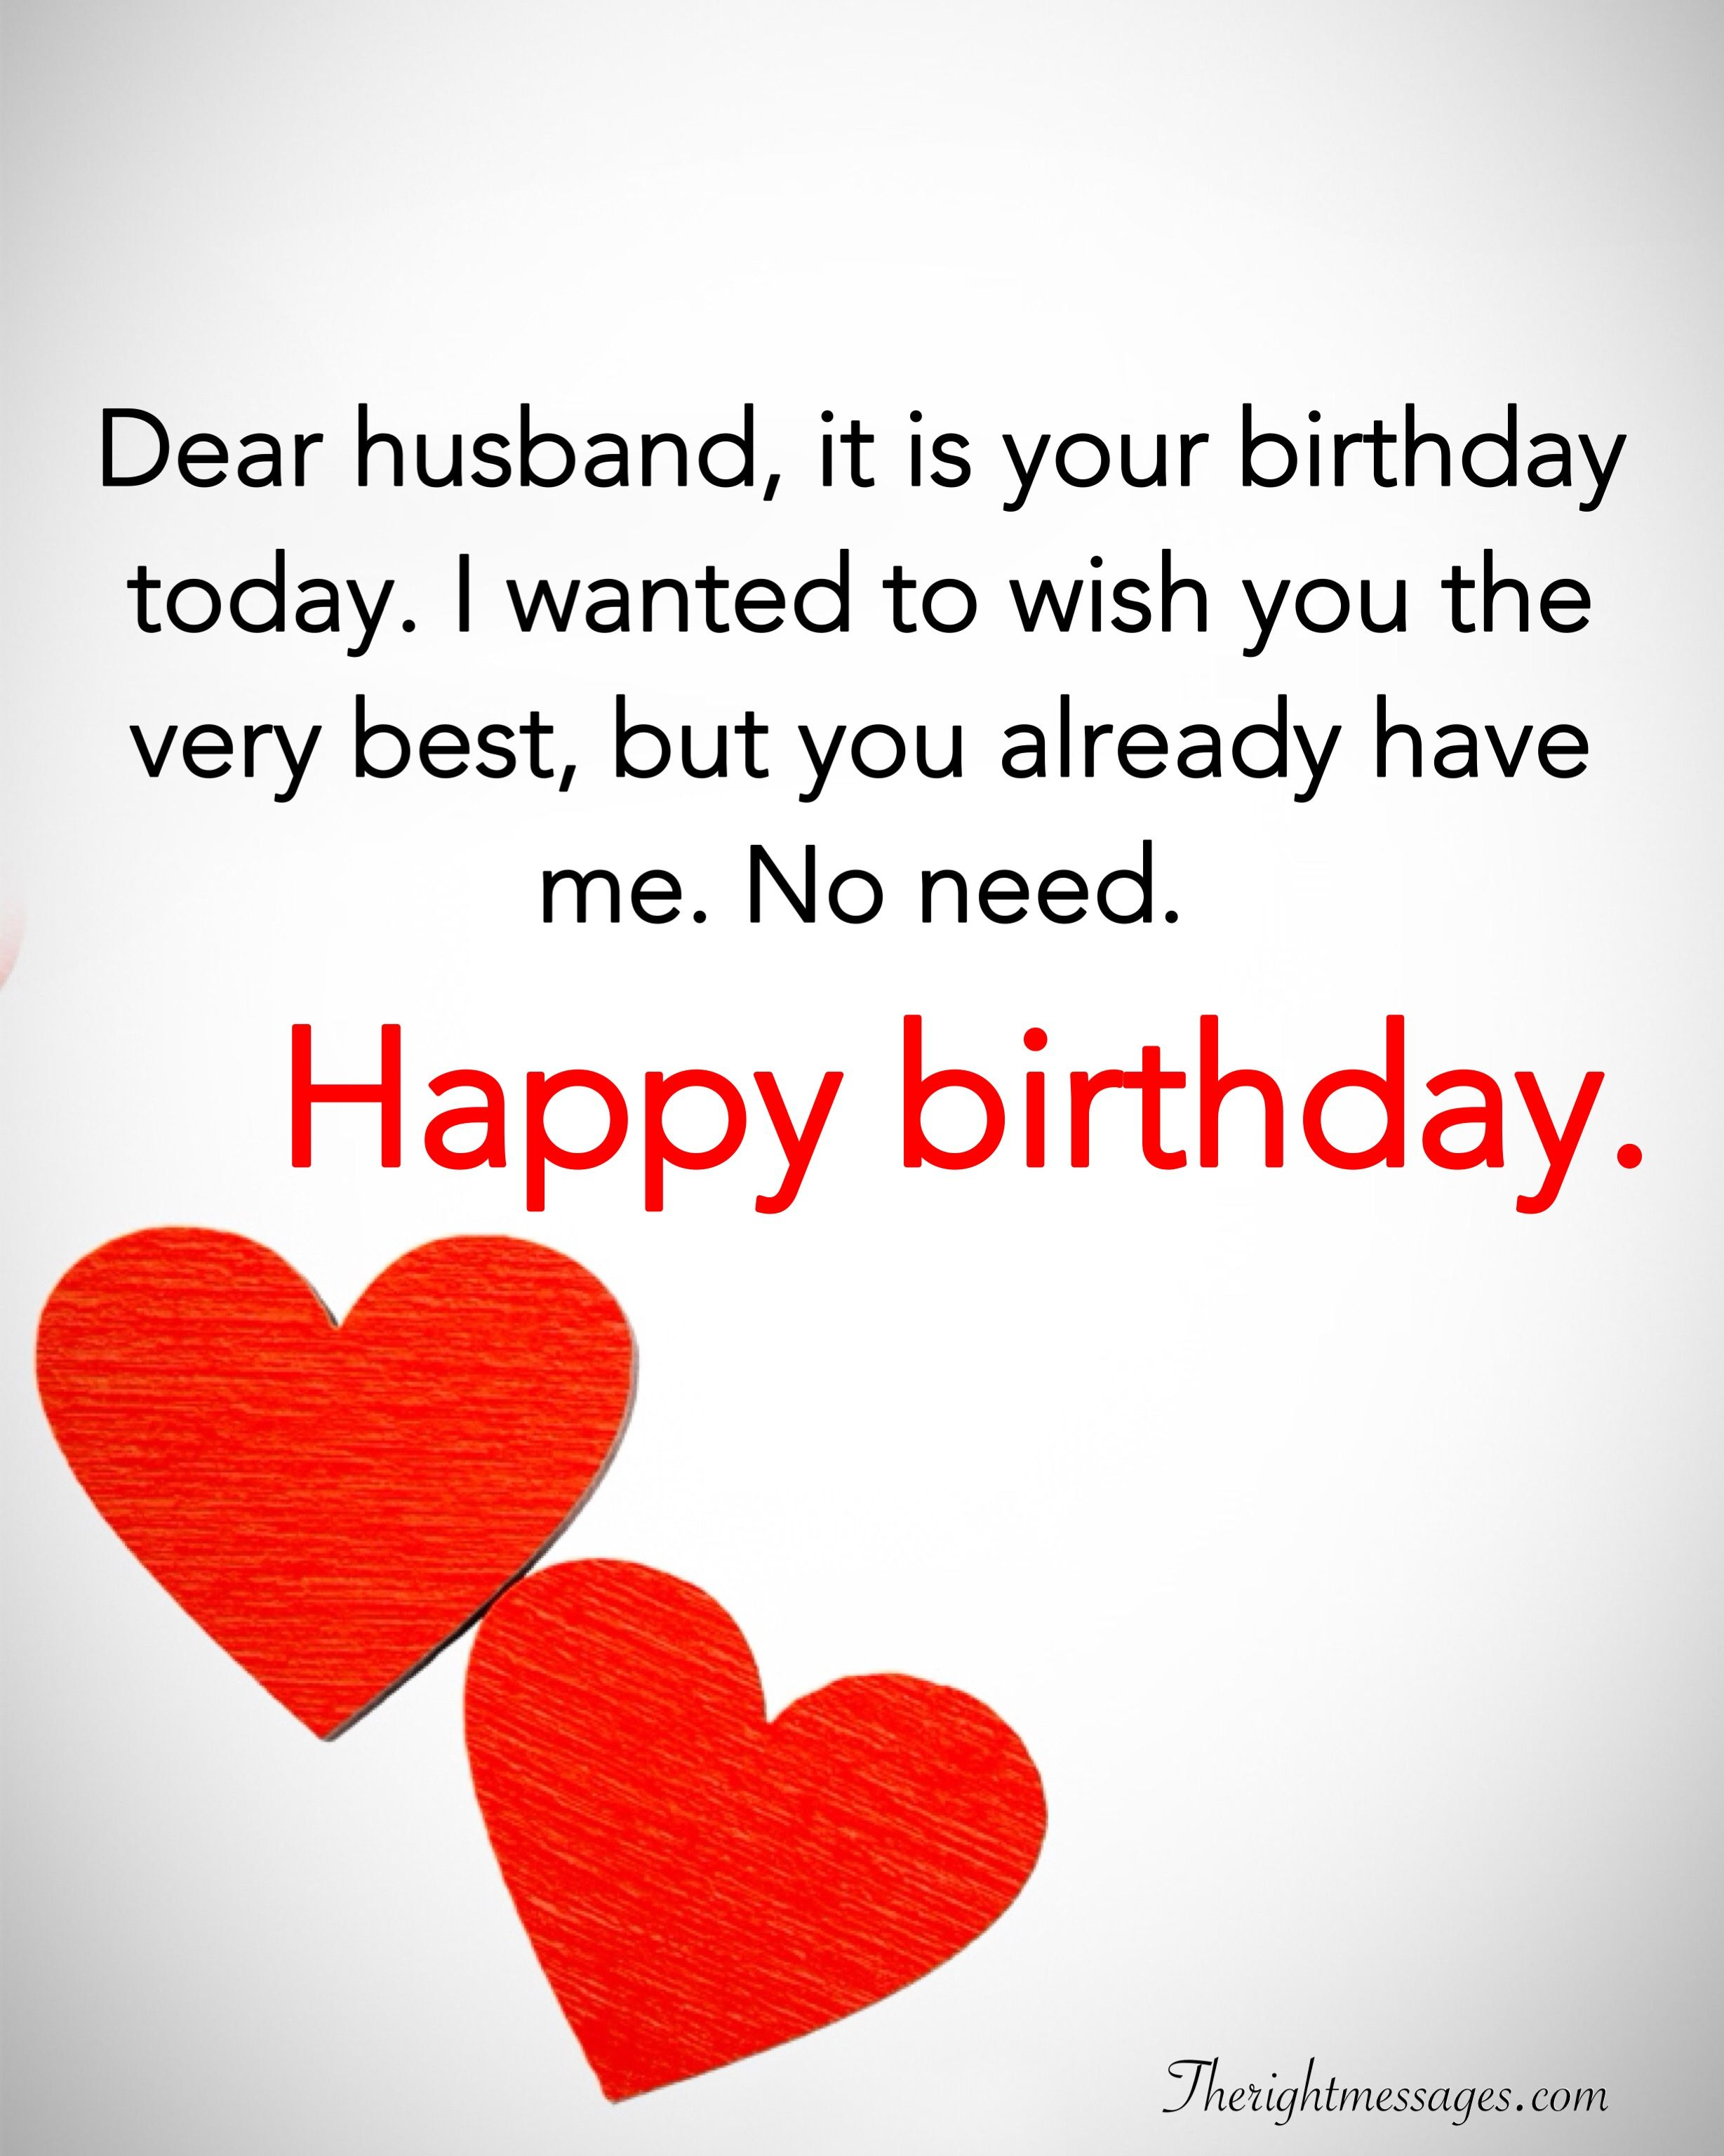 28 Birthday Wishes For Your Husband Romantic Funny Poems